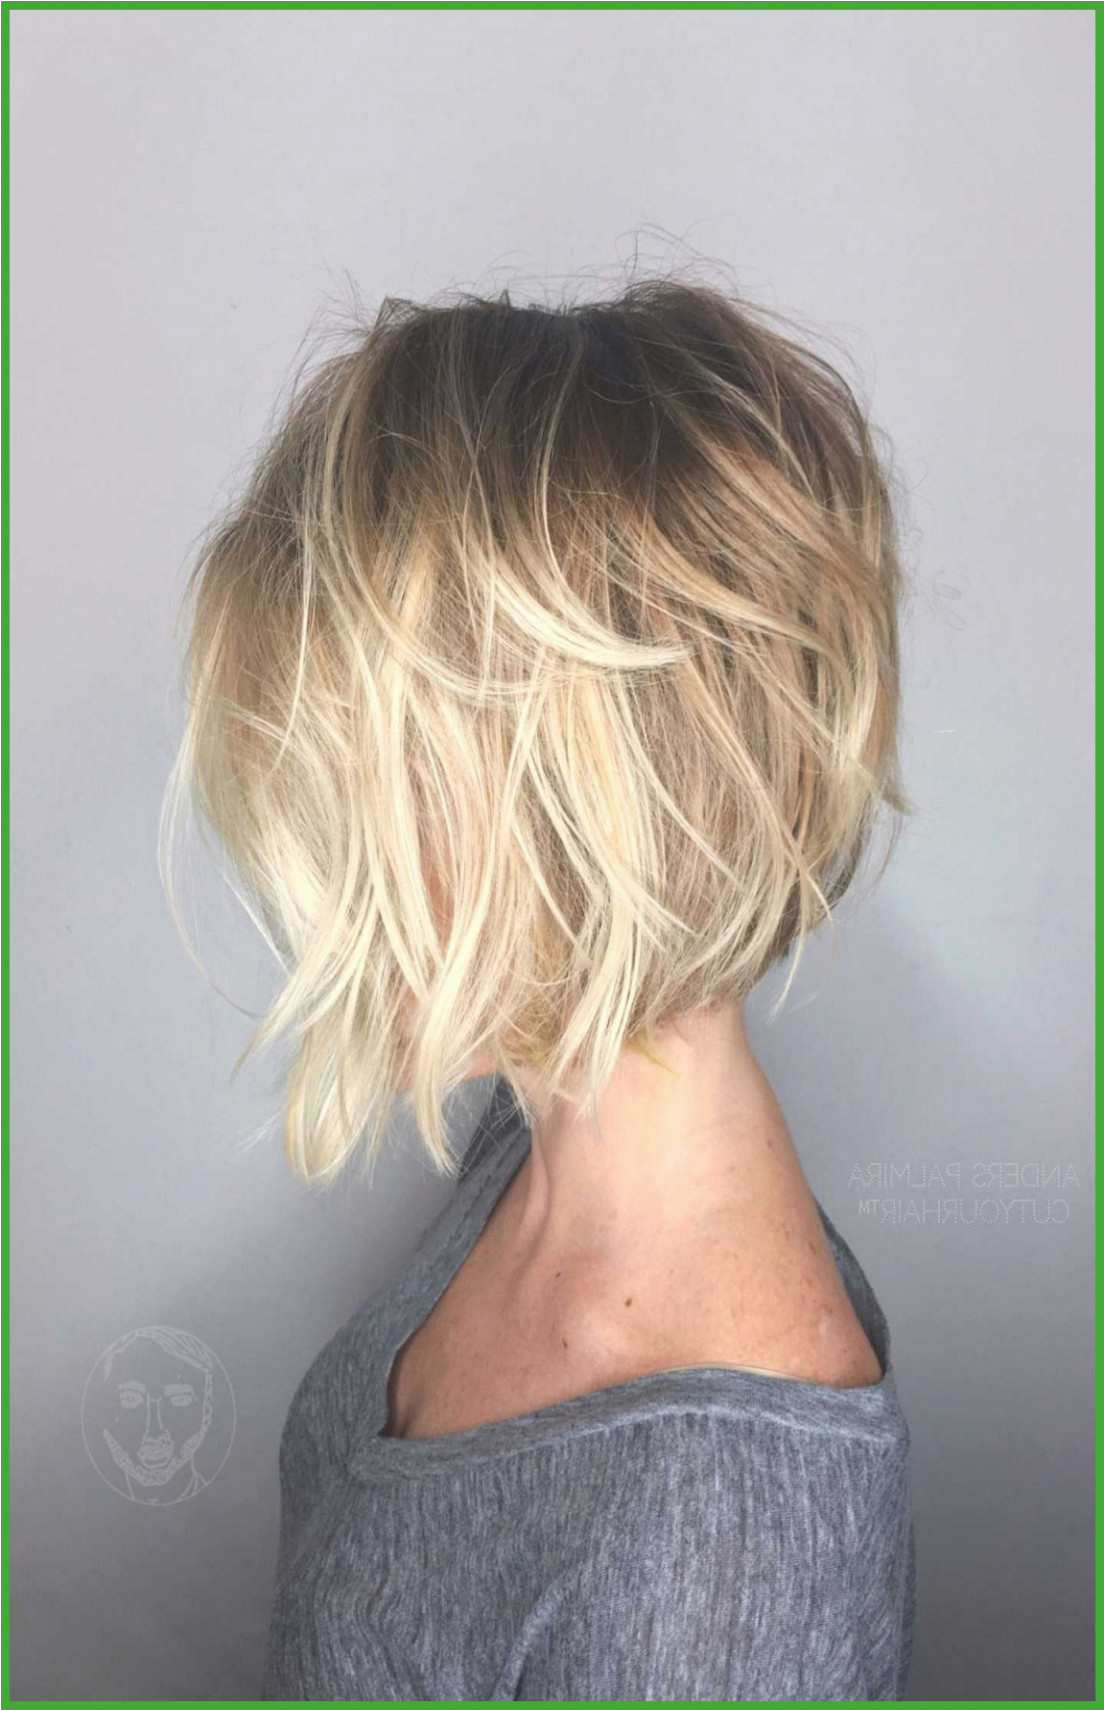 Best of Cute Easy Hairstyles for Short Hair Cool Medium Bob Hairstyle Awesome I Pinimg 1200x